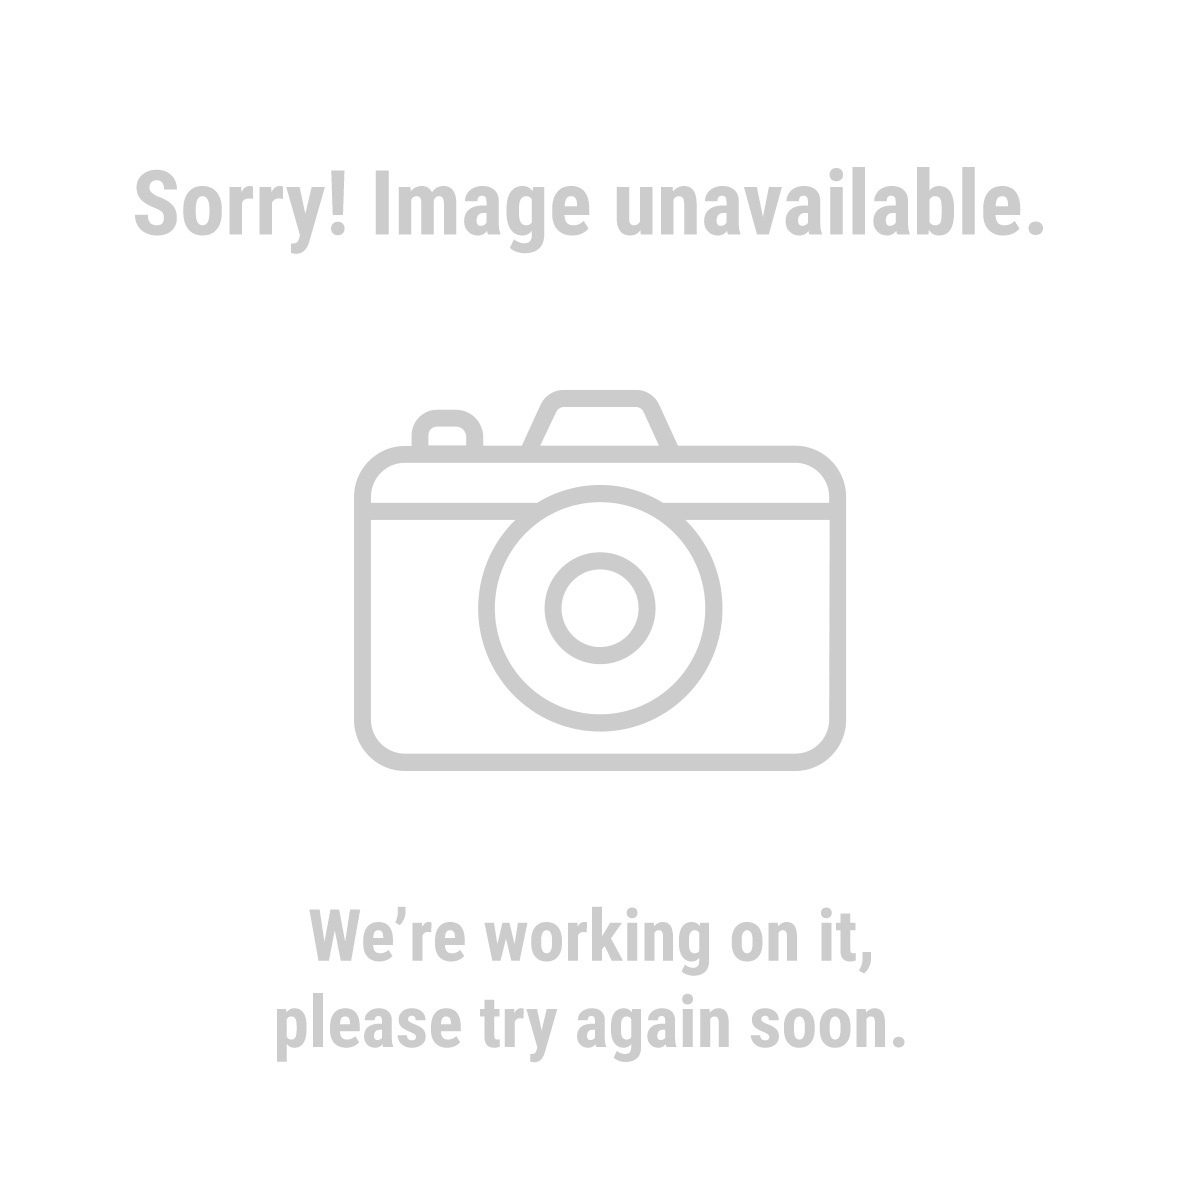 Pittsburgh Forge 40349 12 Piece Screw Extractor Set